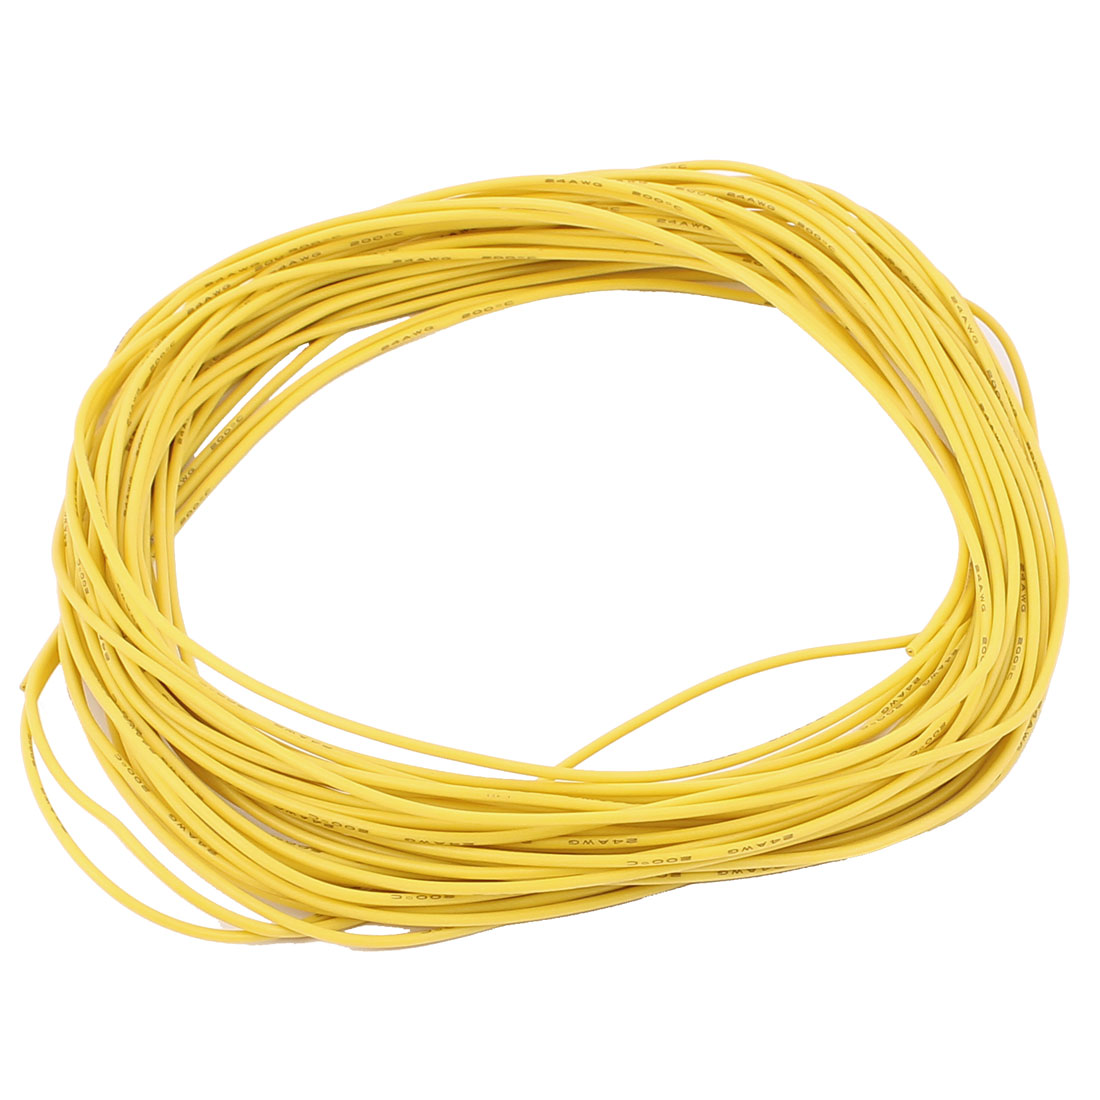 15M 24AWG Electric Copper Core Flexible Silicone Wire Cable Yellow